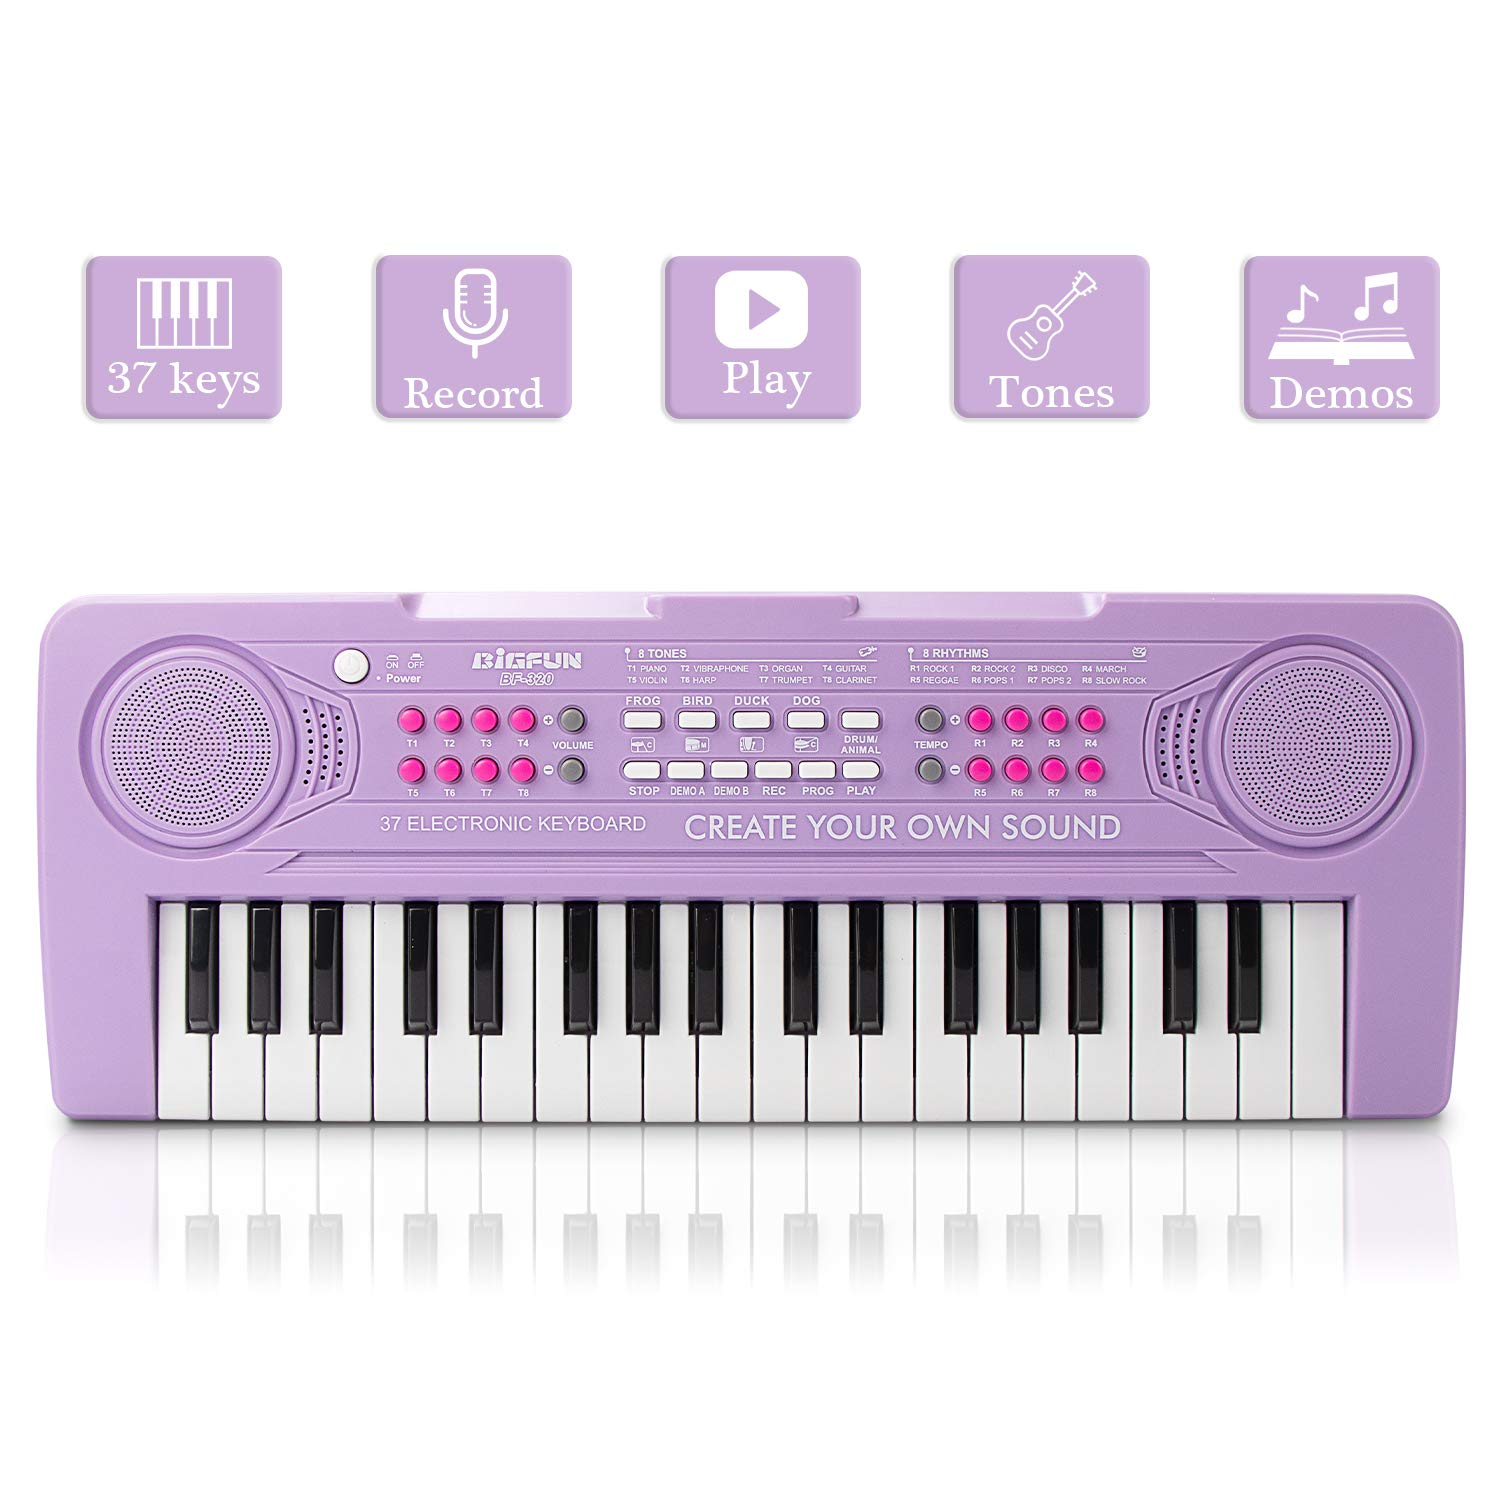 JINRUCHE Kids Piano, 37Keys Multi-Function Electronic Keyboard Piano Play Piano Organ Music Educational Toy for Toddlers Children (Purple)